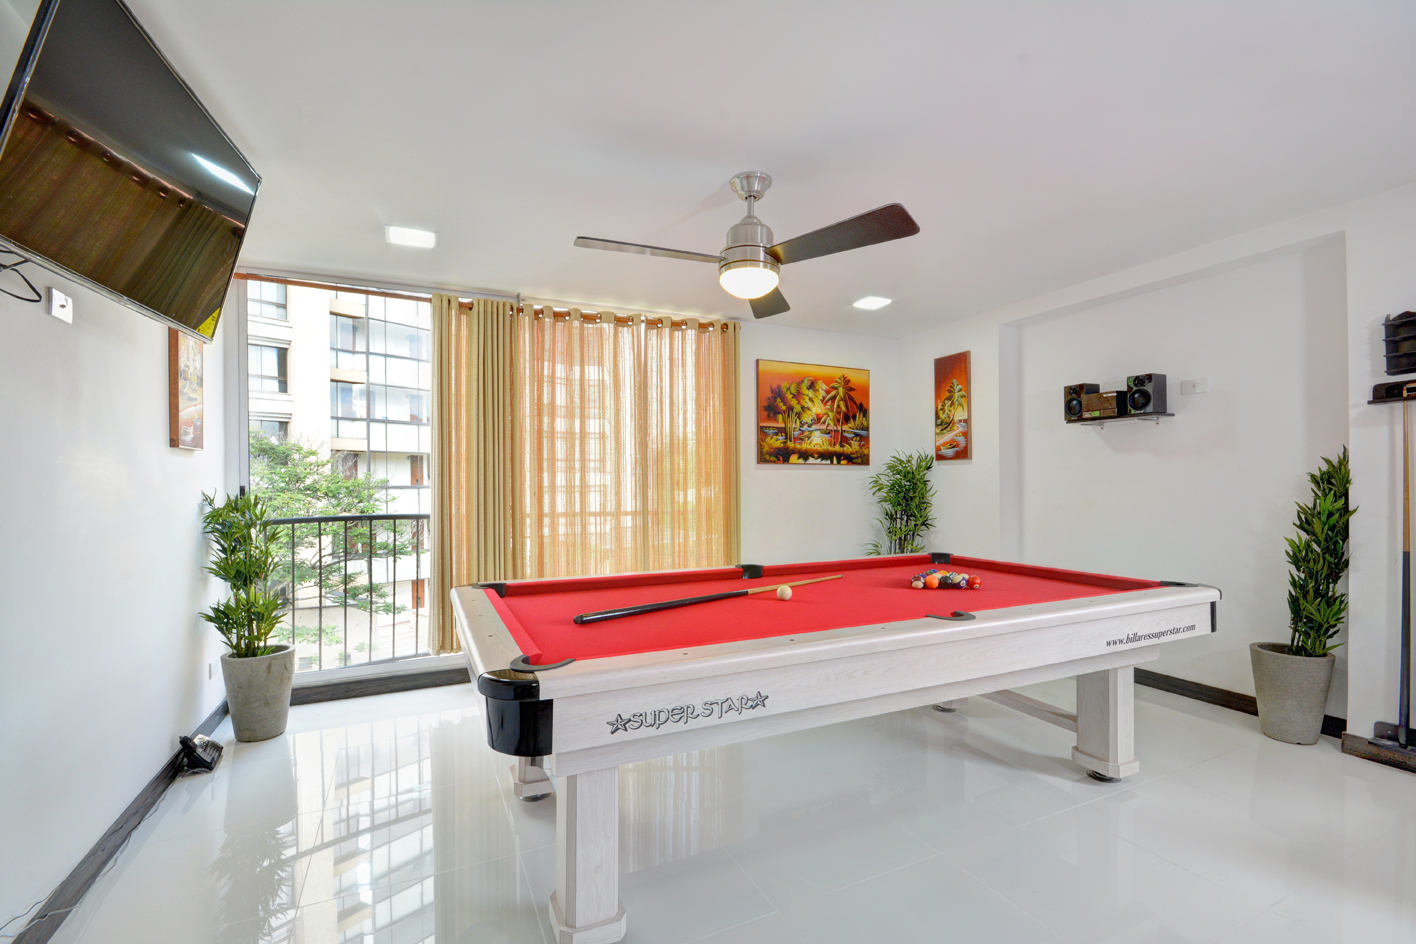 Pool table isolated in Medellin apartment for rent